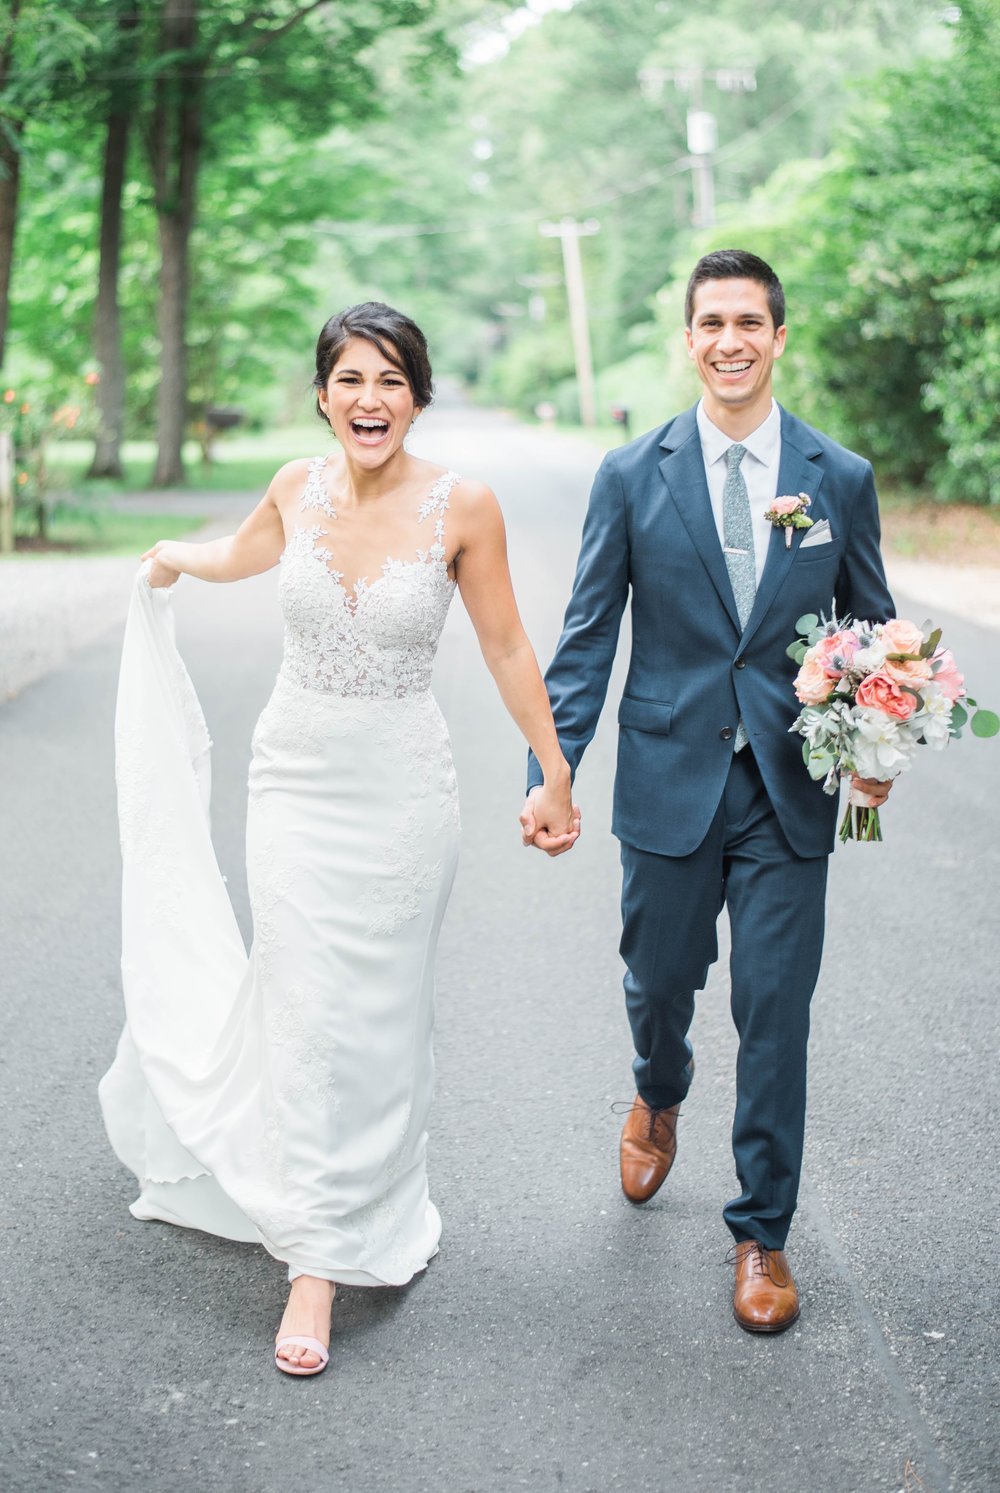 Williamsburgvawedding_backyardwedding_virginiaweddingphotographer_lynchburgweddingphotographer_PaulAliya 25.jpg